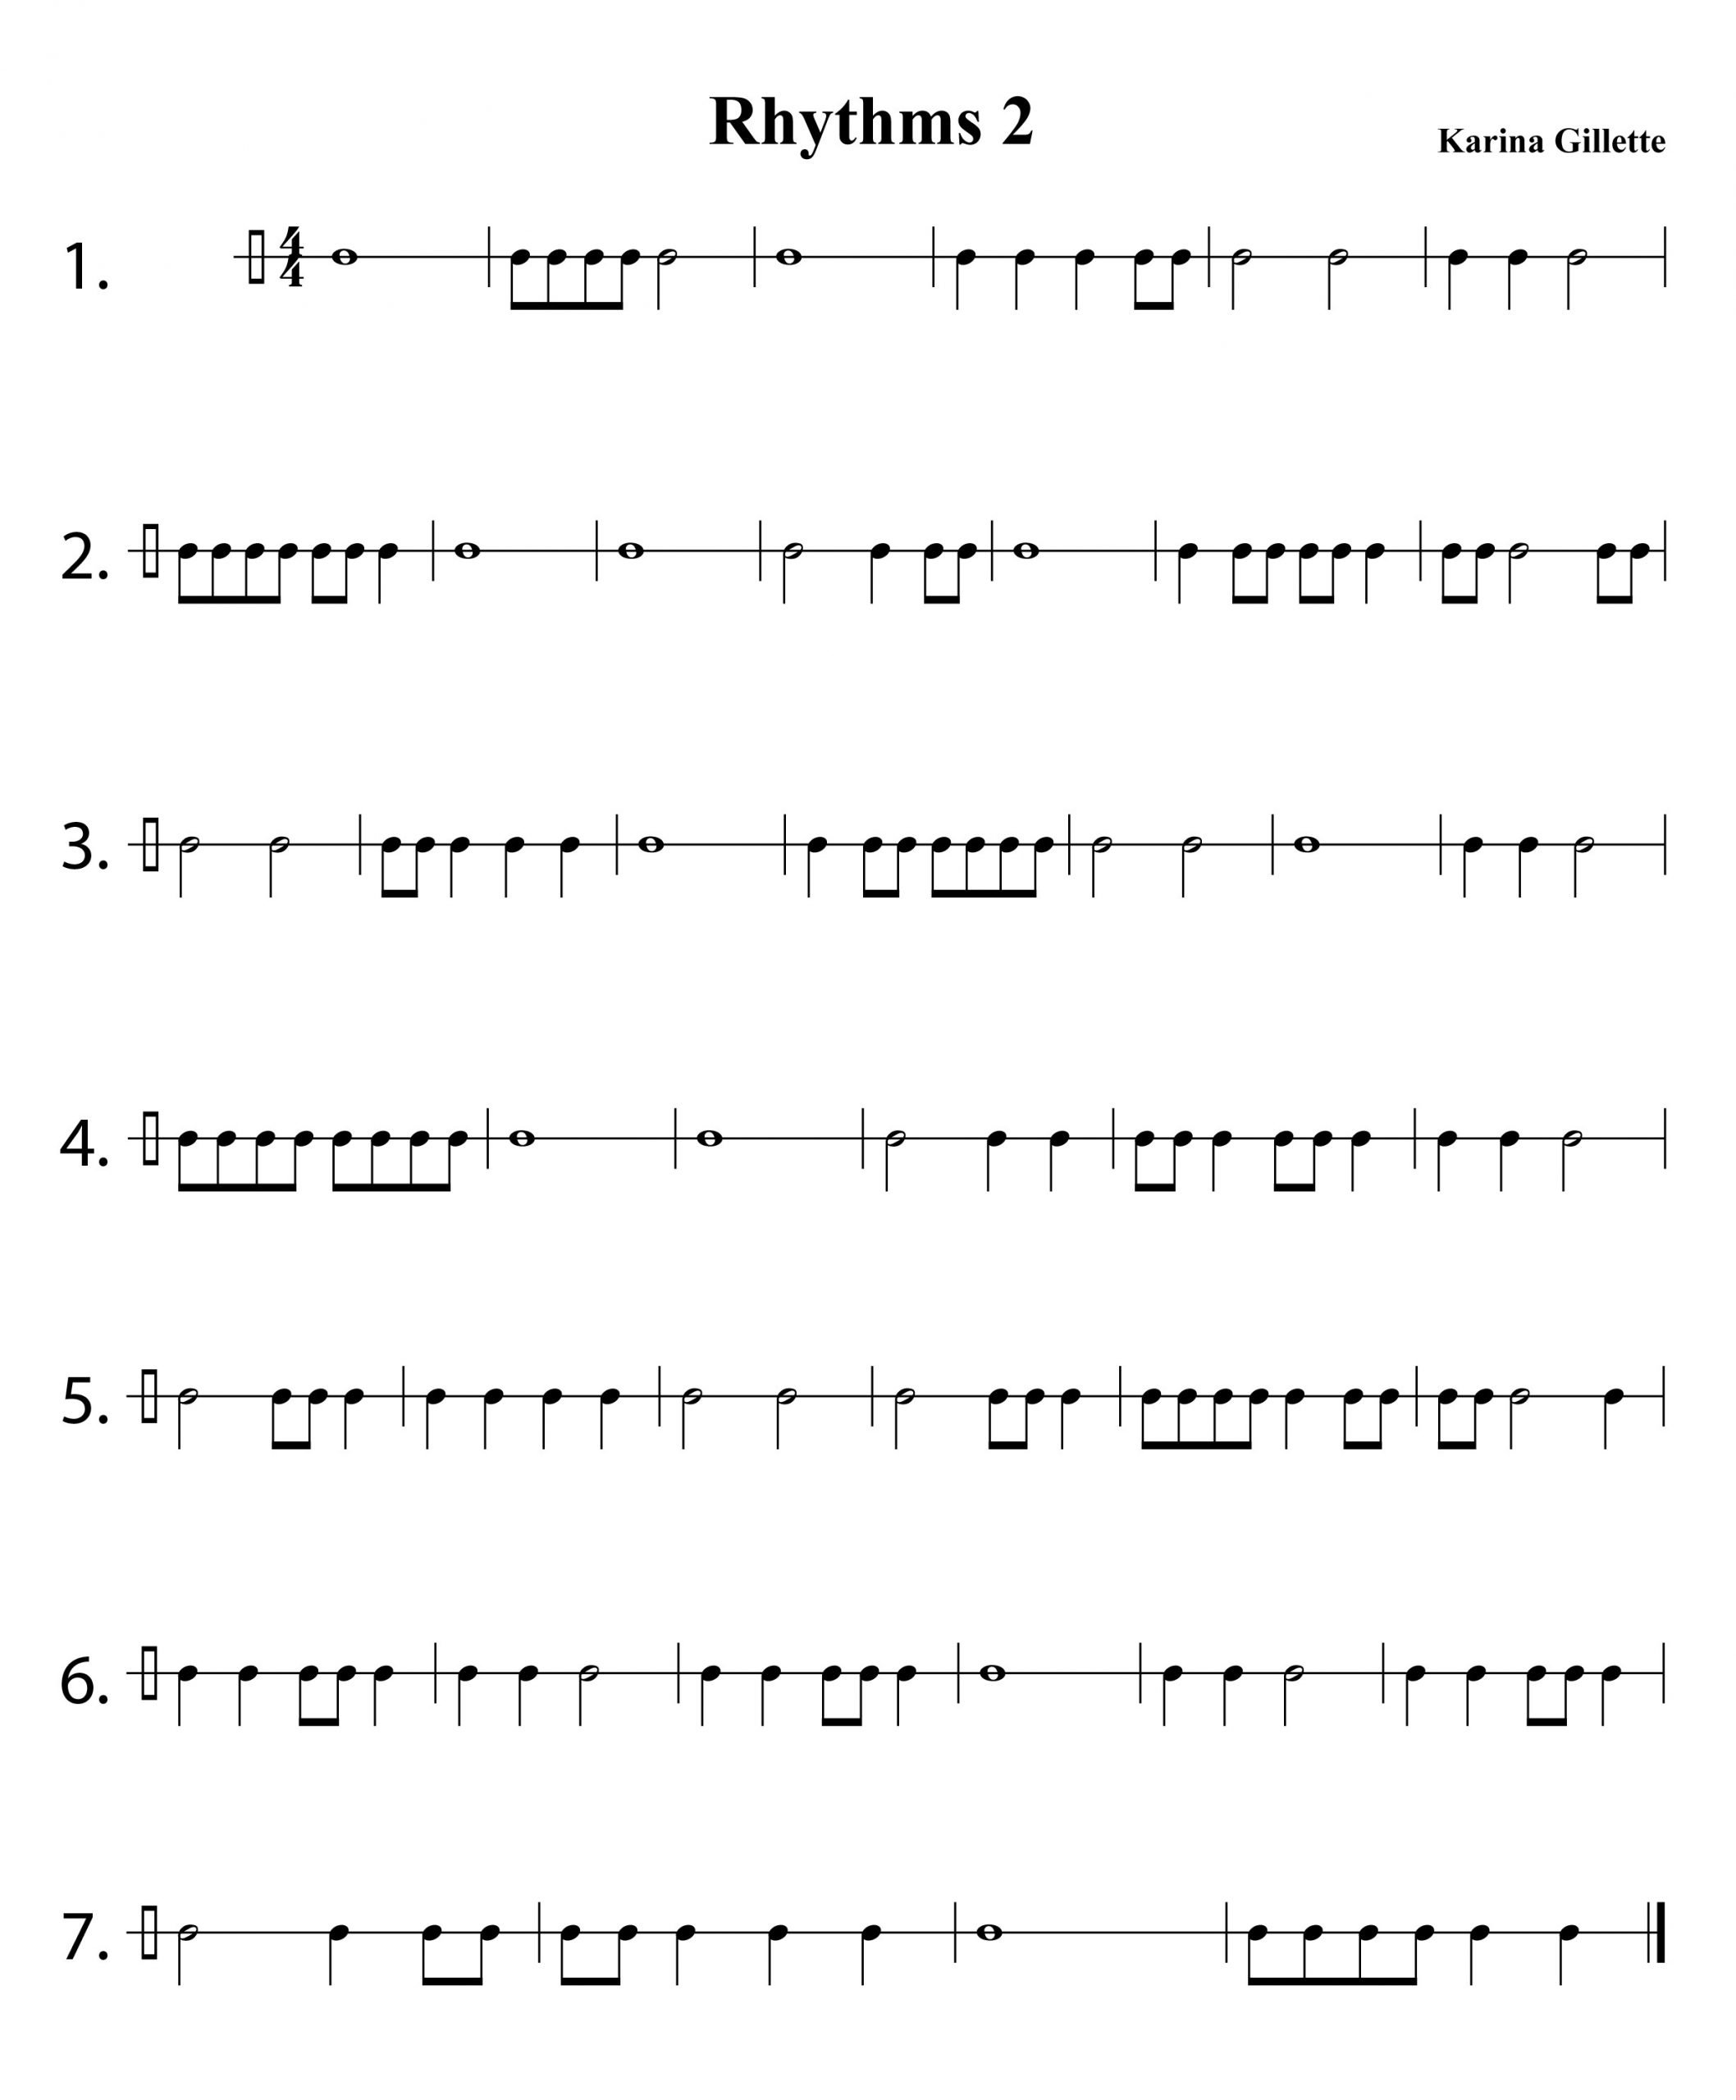 Rhythm Counting Worksheet Pdf Music theory Worksheets for Beginners